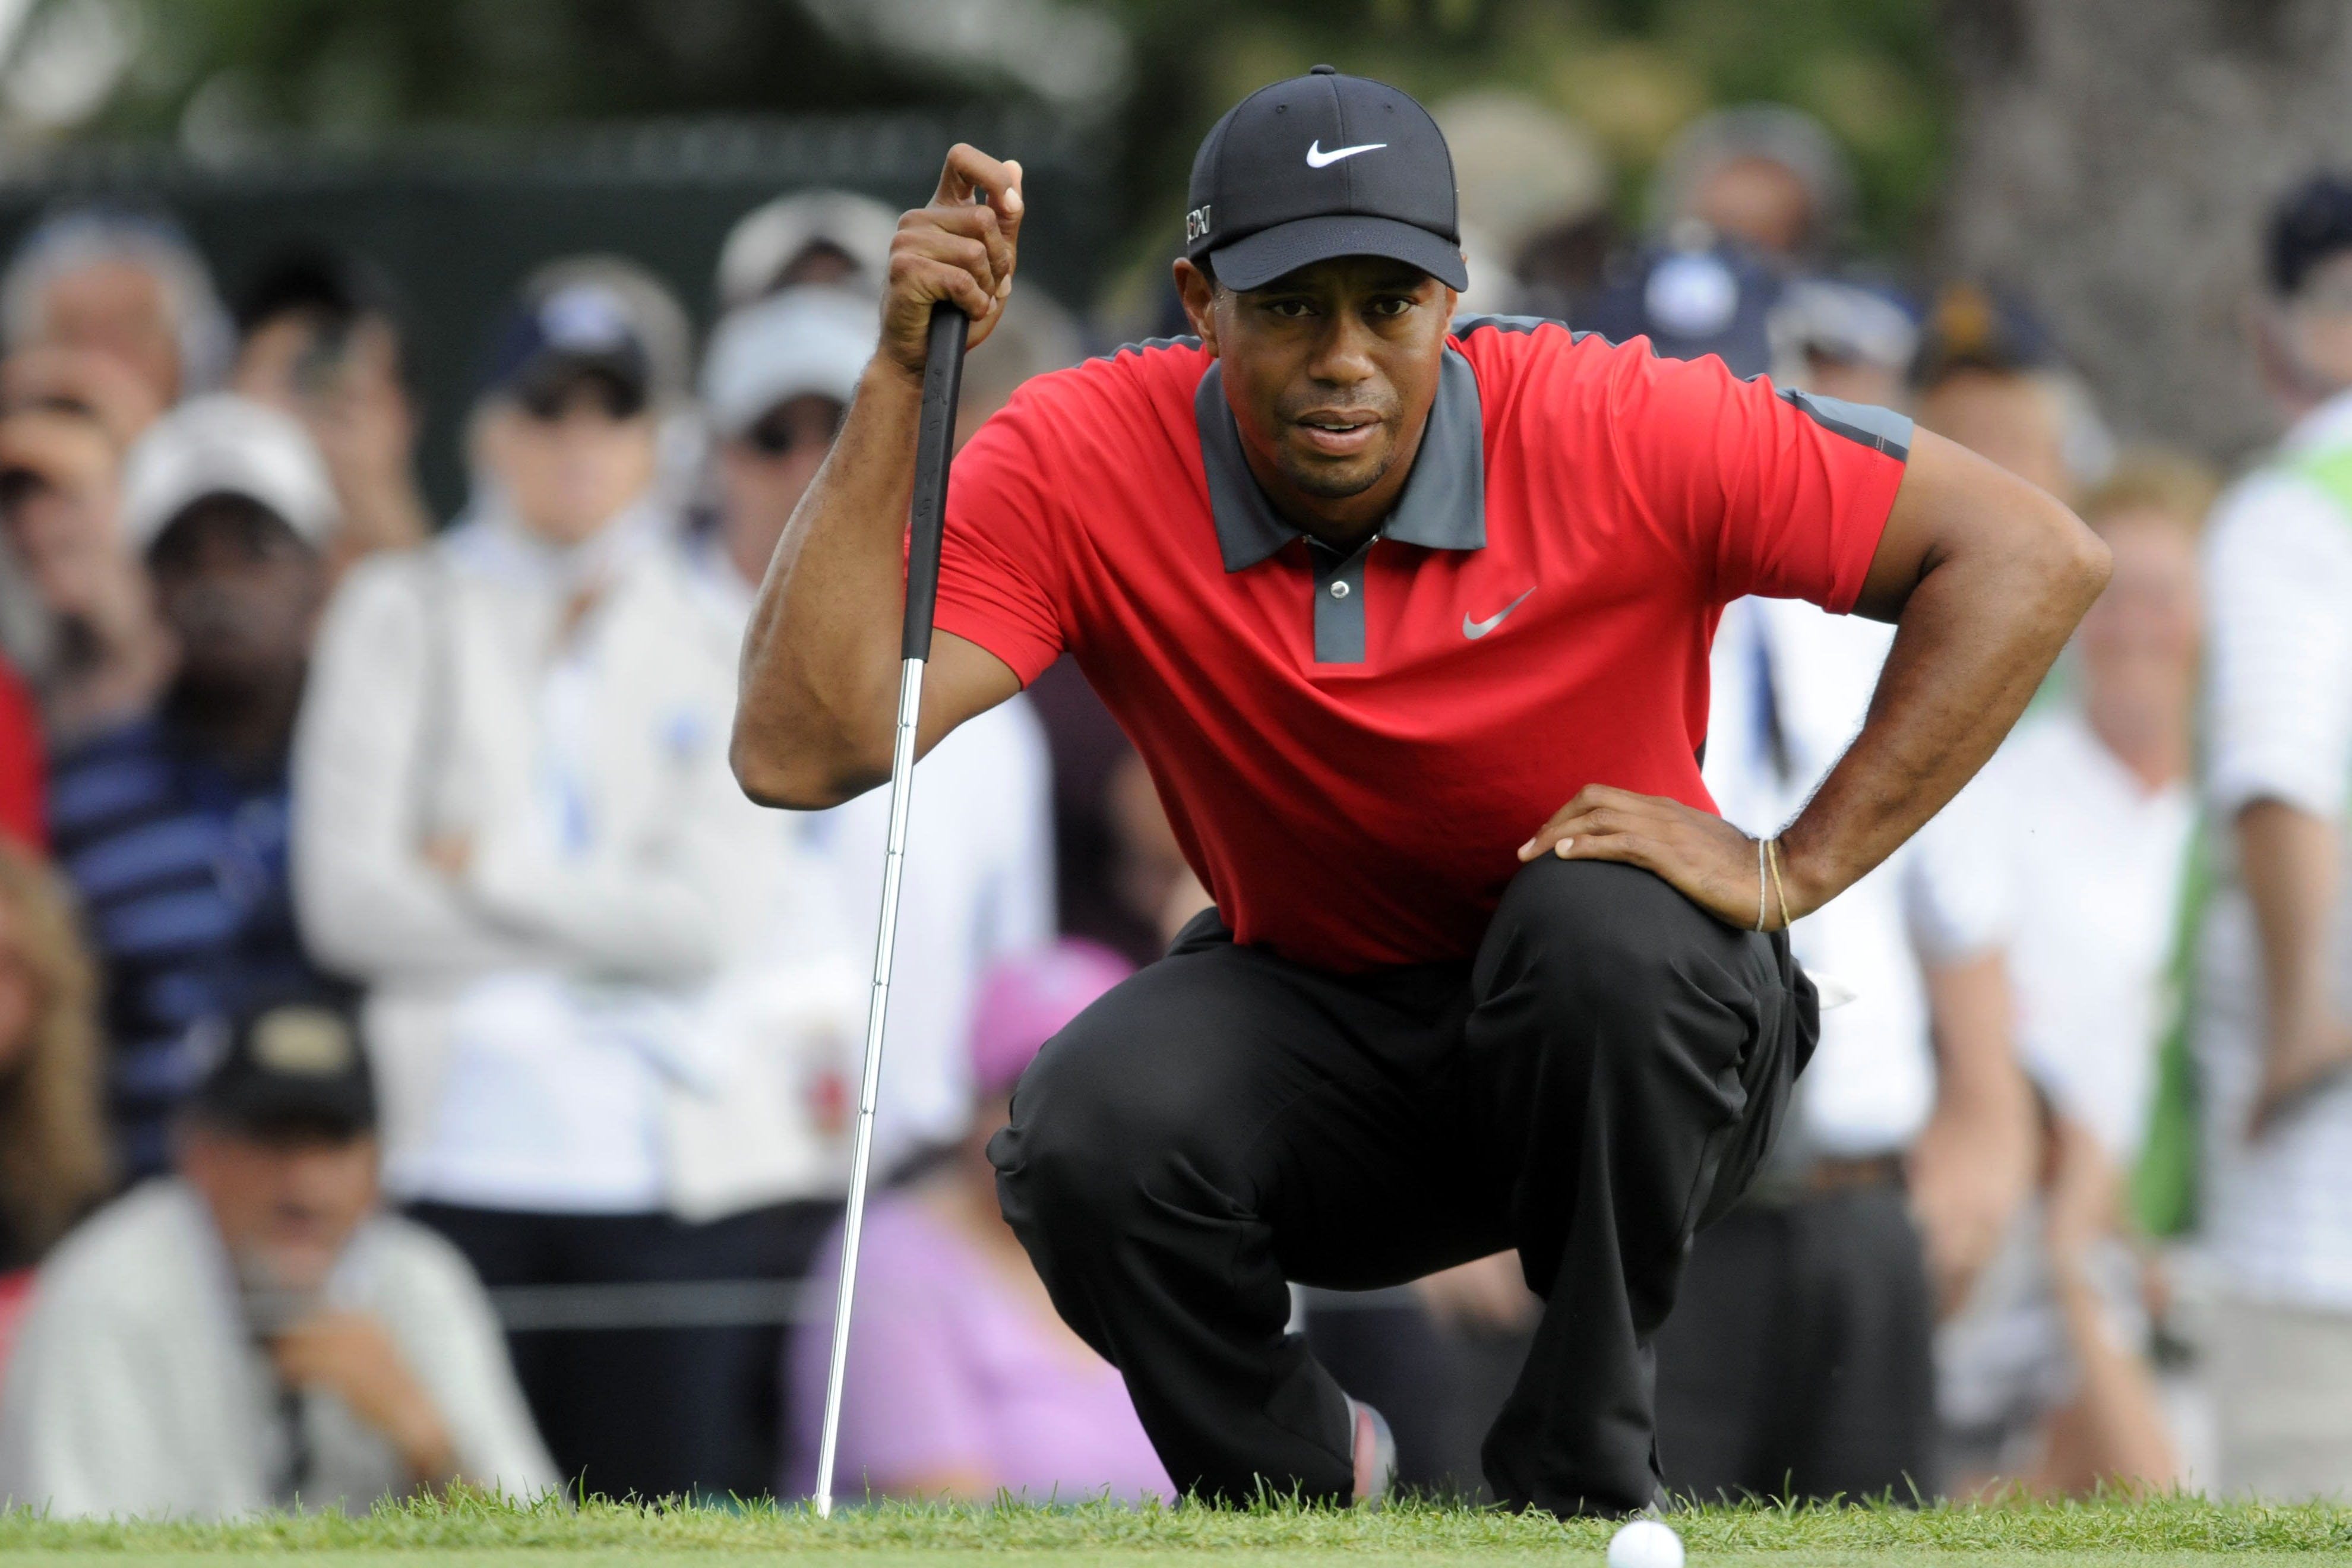 Tiger's not coming, he found out Eddie was going to be there.(photo Mark Konezny-USA TODAY Sports)